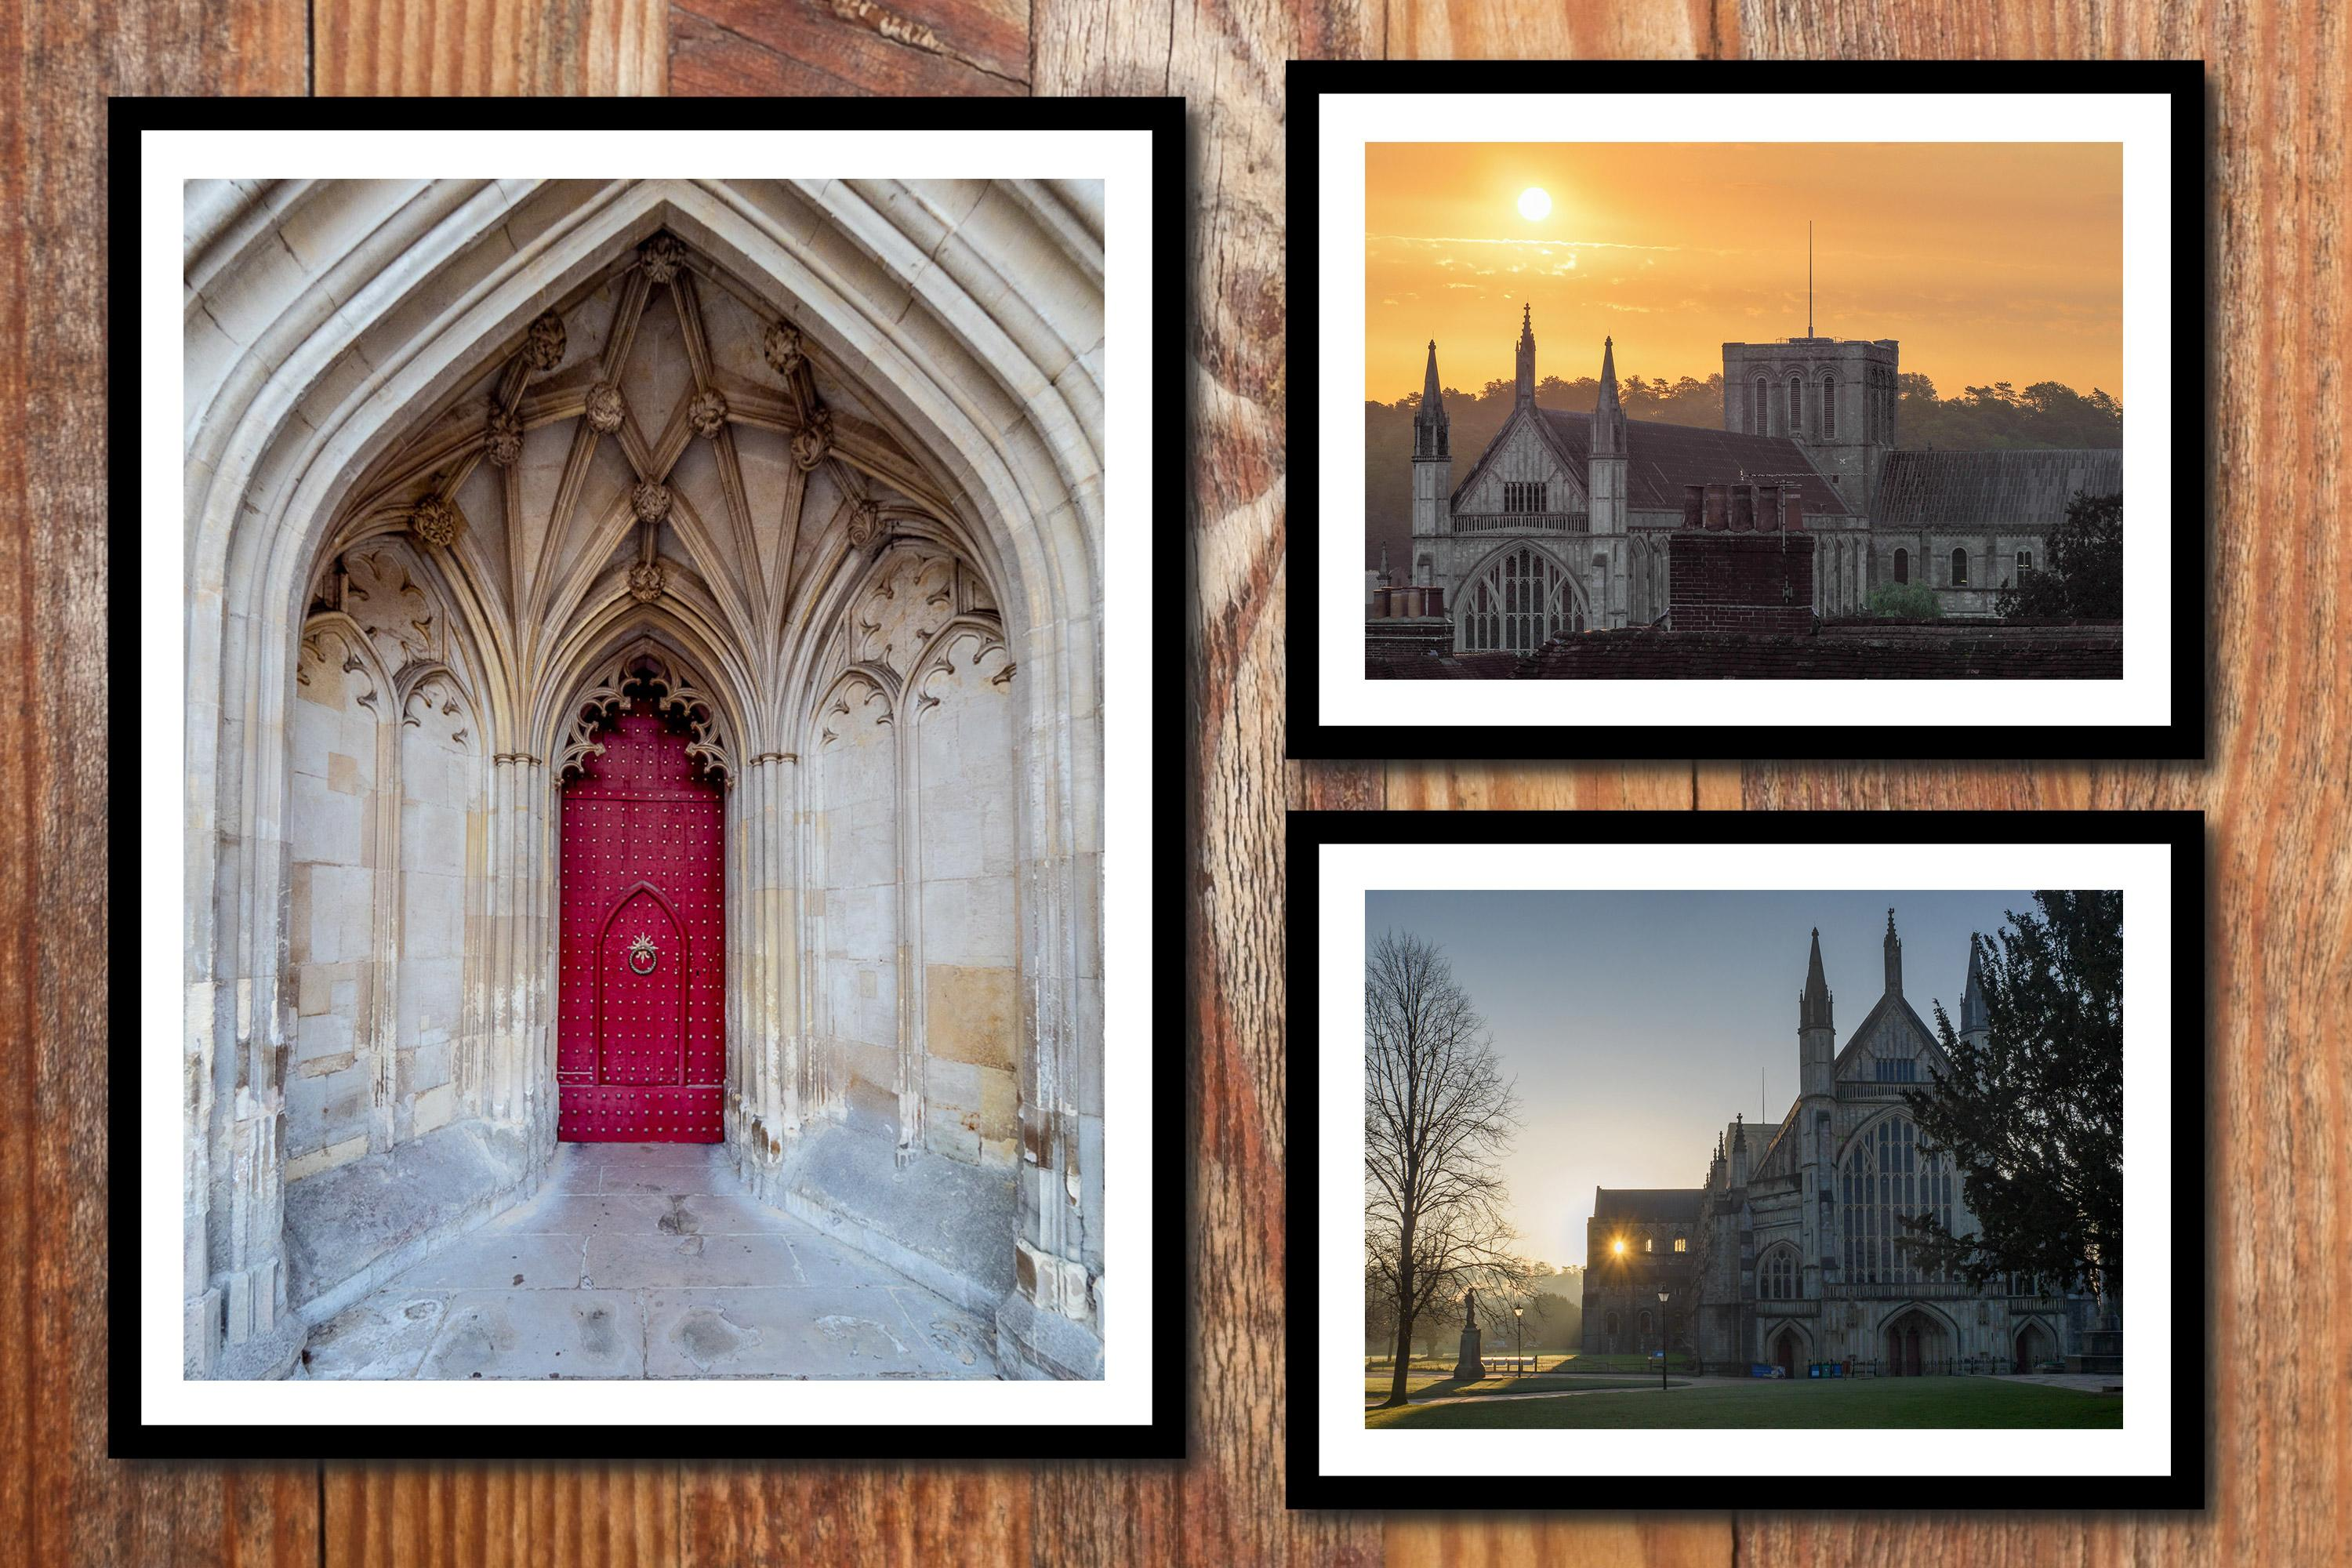 Winchester Cathedral Wall Art - 3 print gallery wall collection